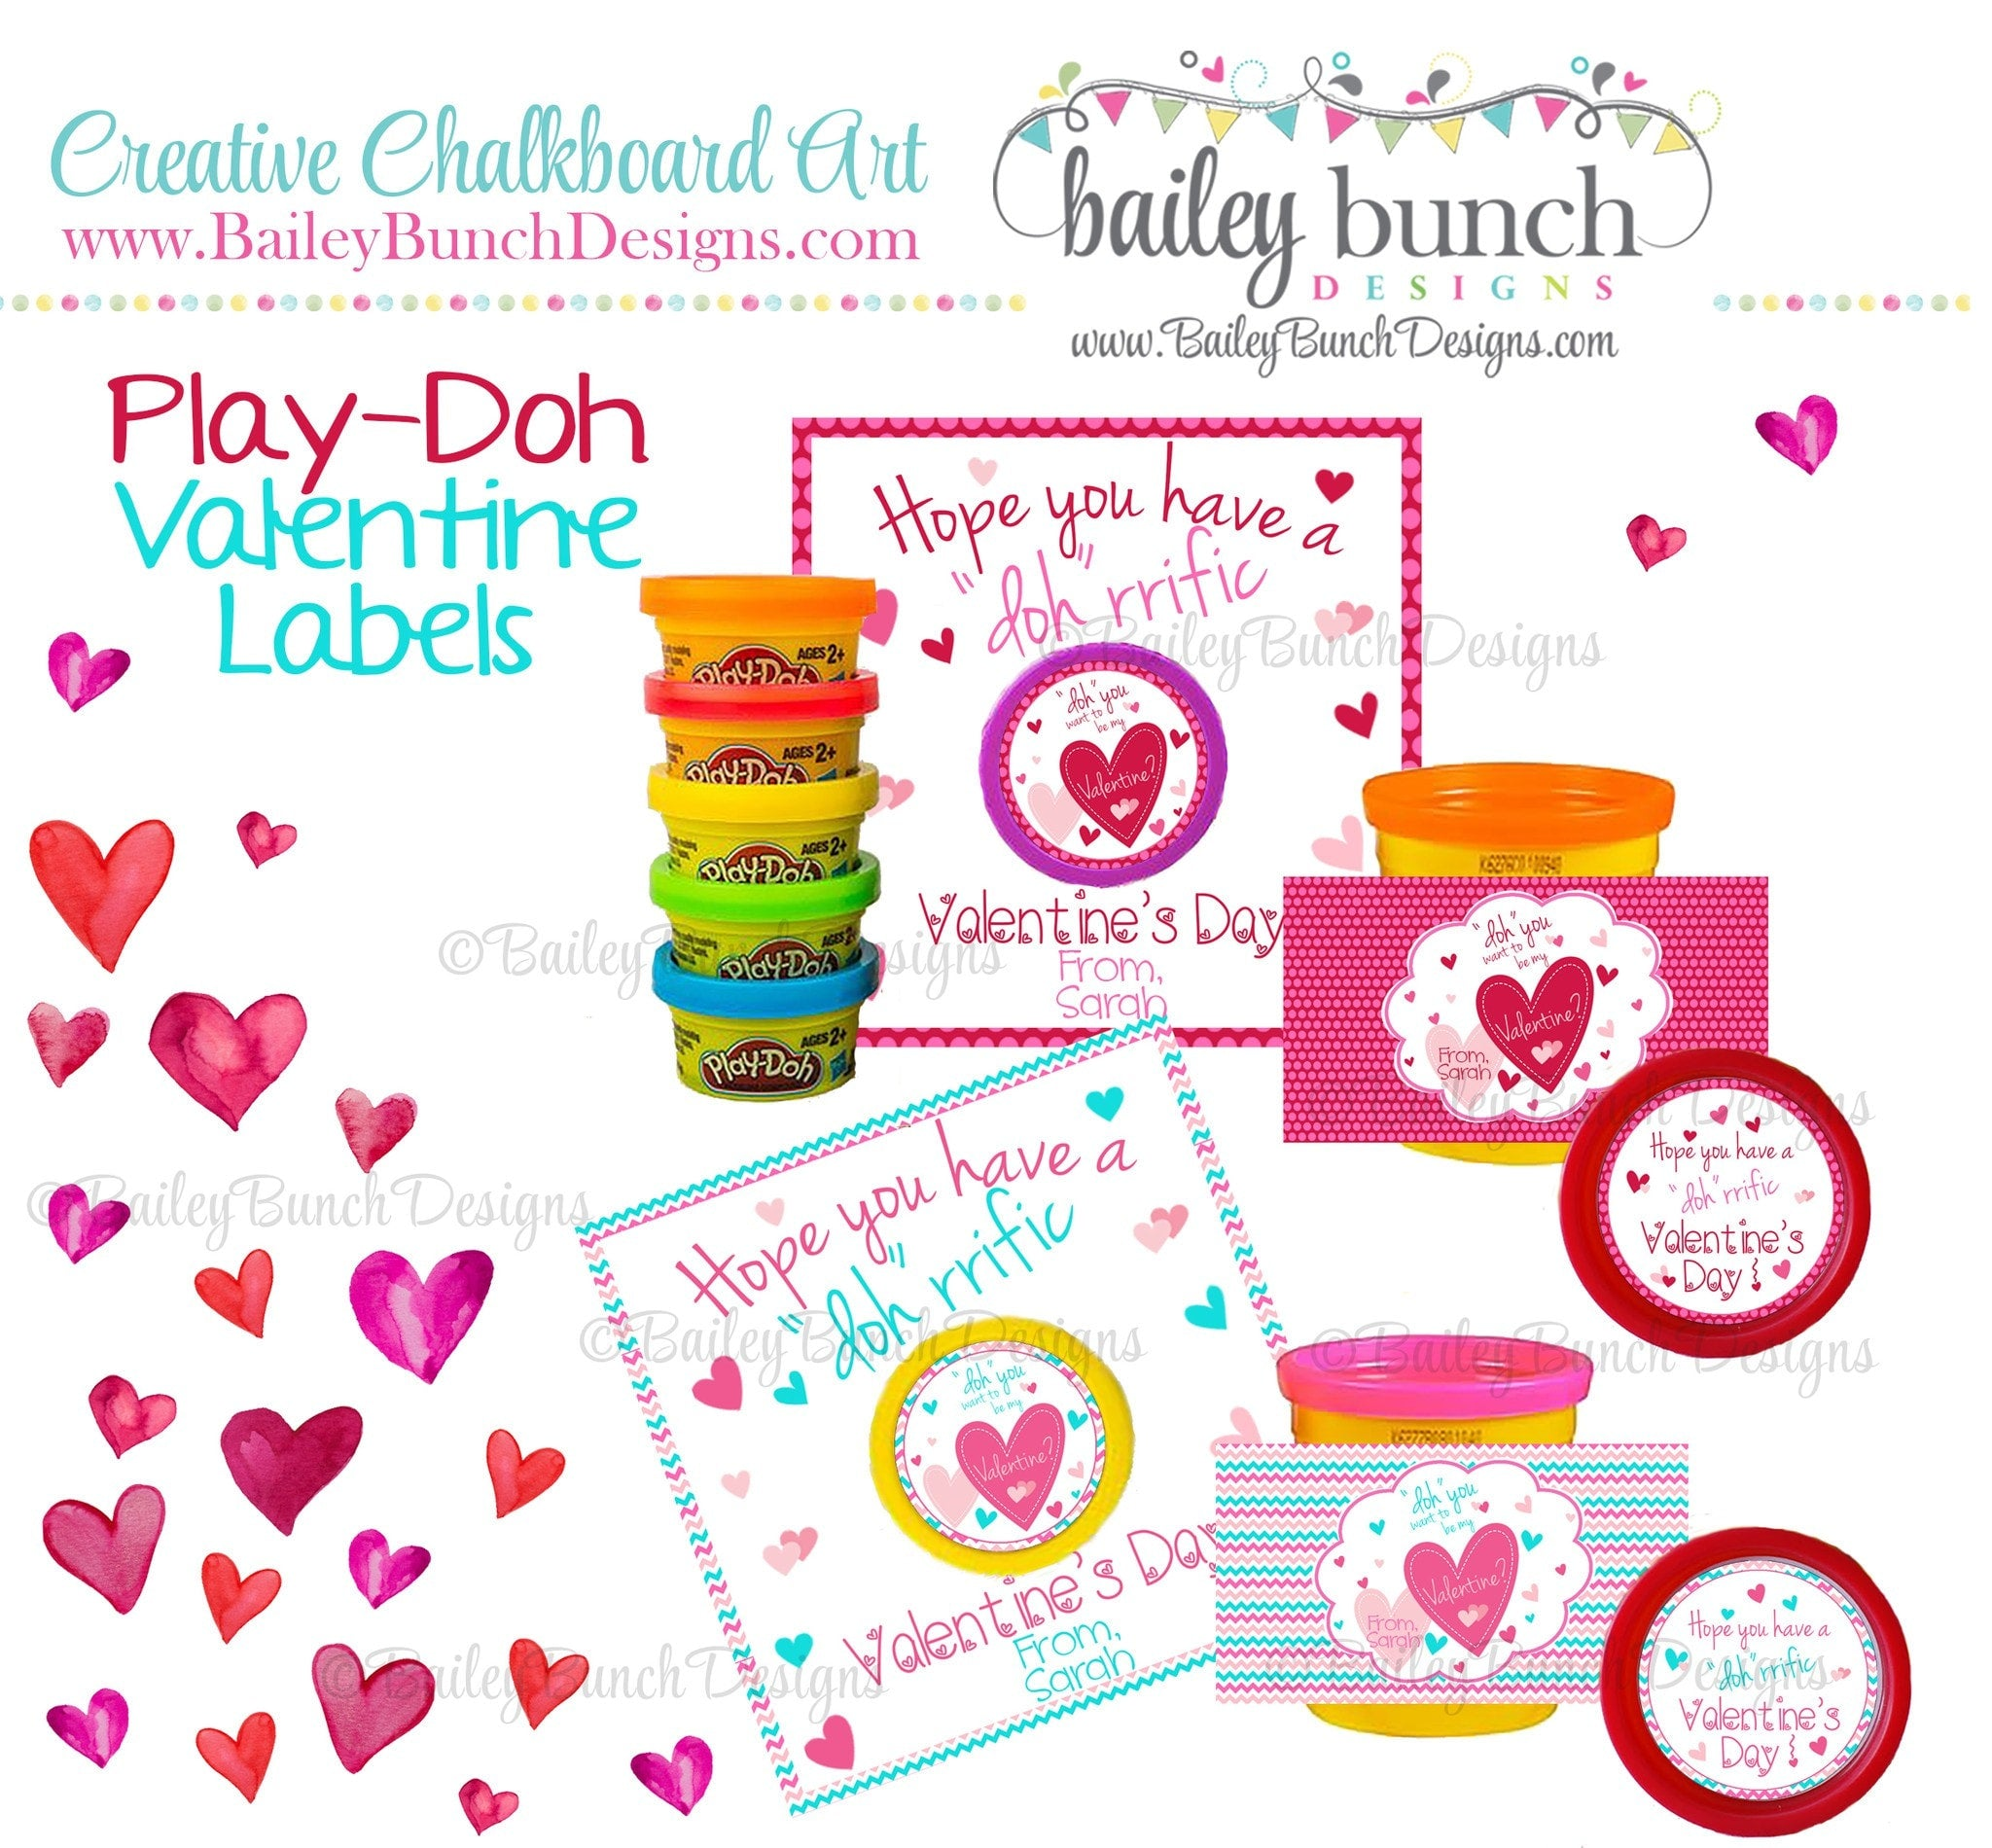 photo about Play Doh Valentine Printable known as Playdoh Valentines, Playdoh \